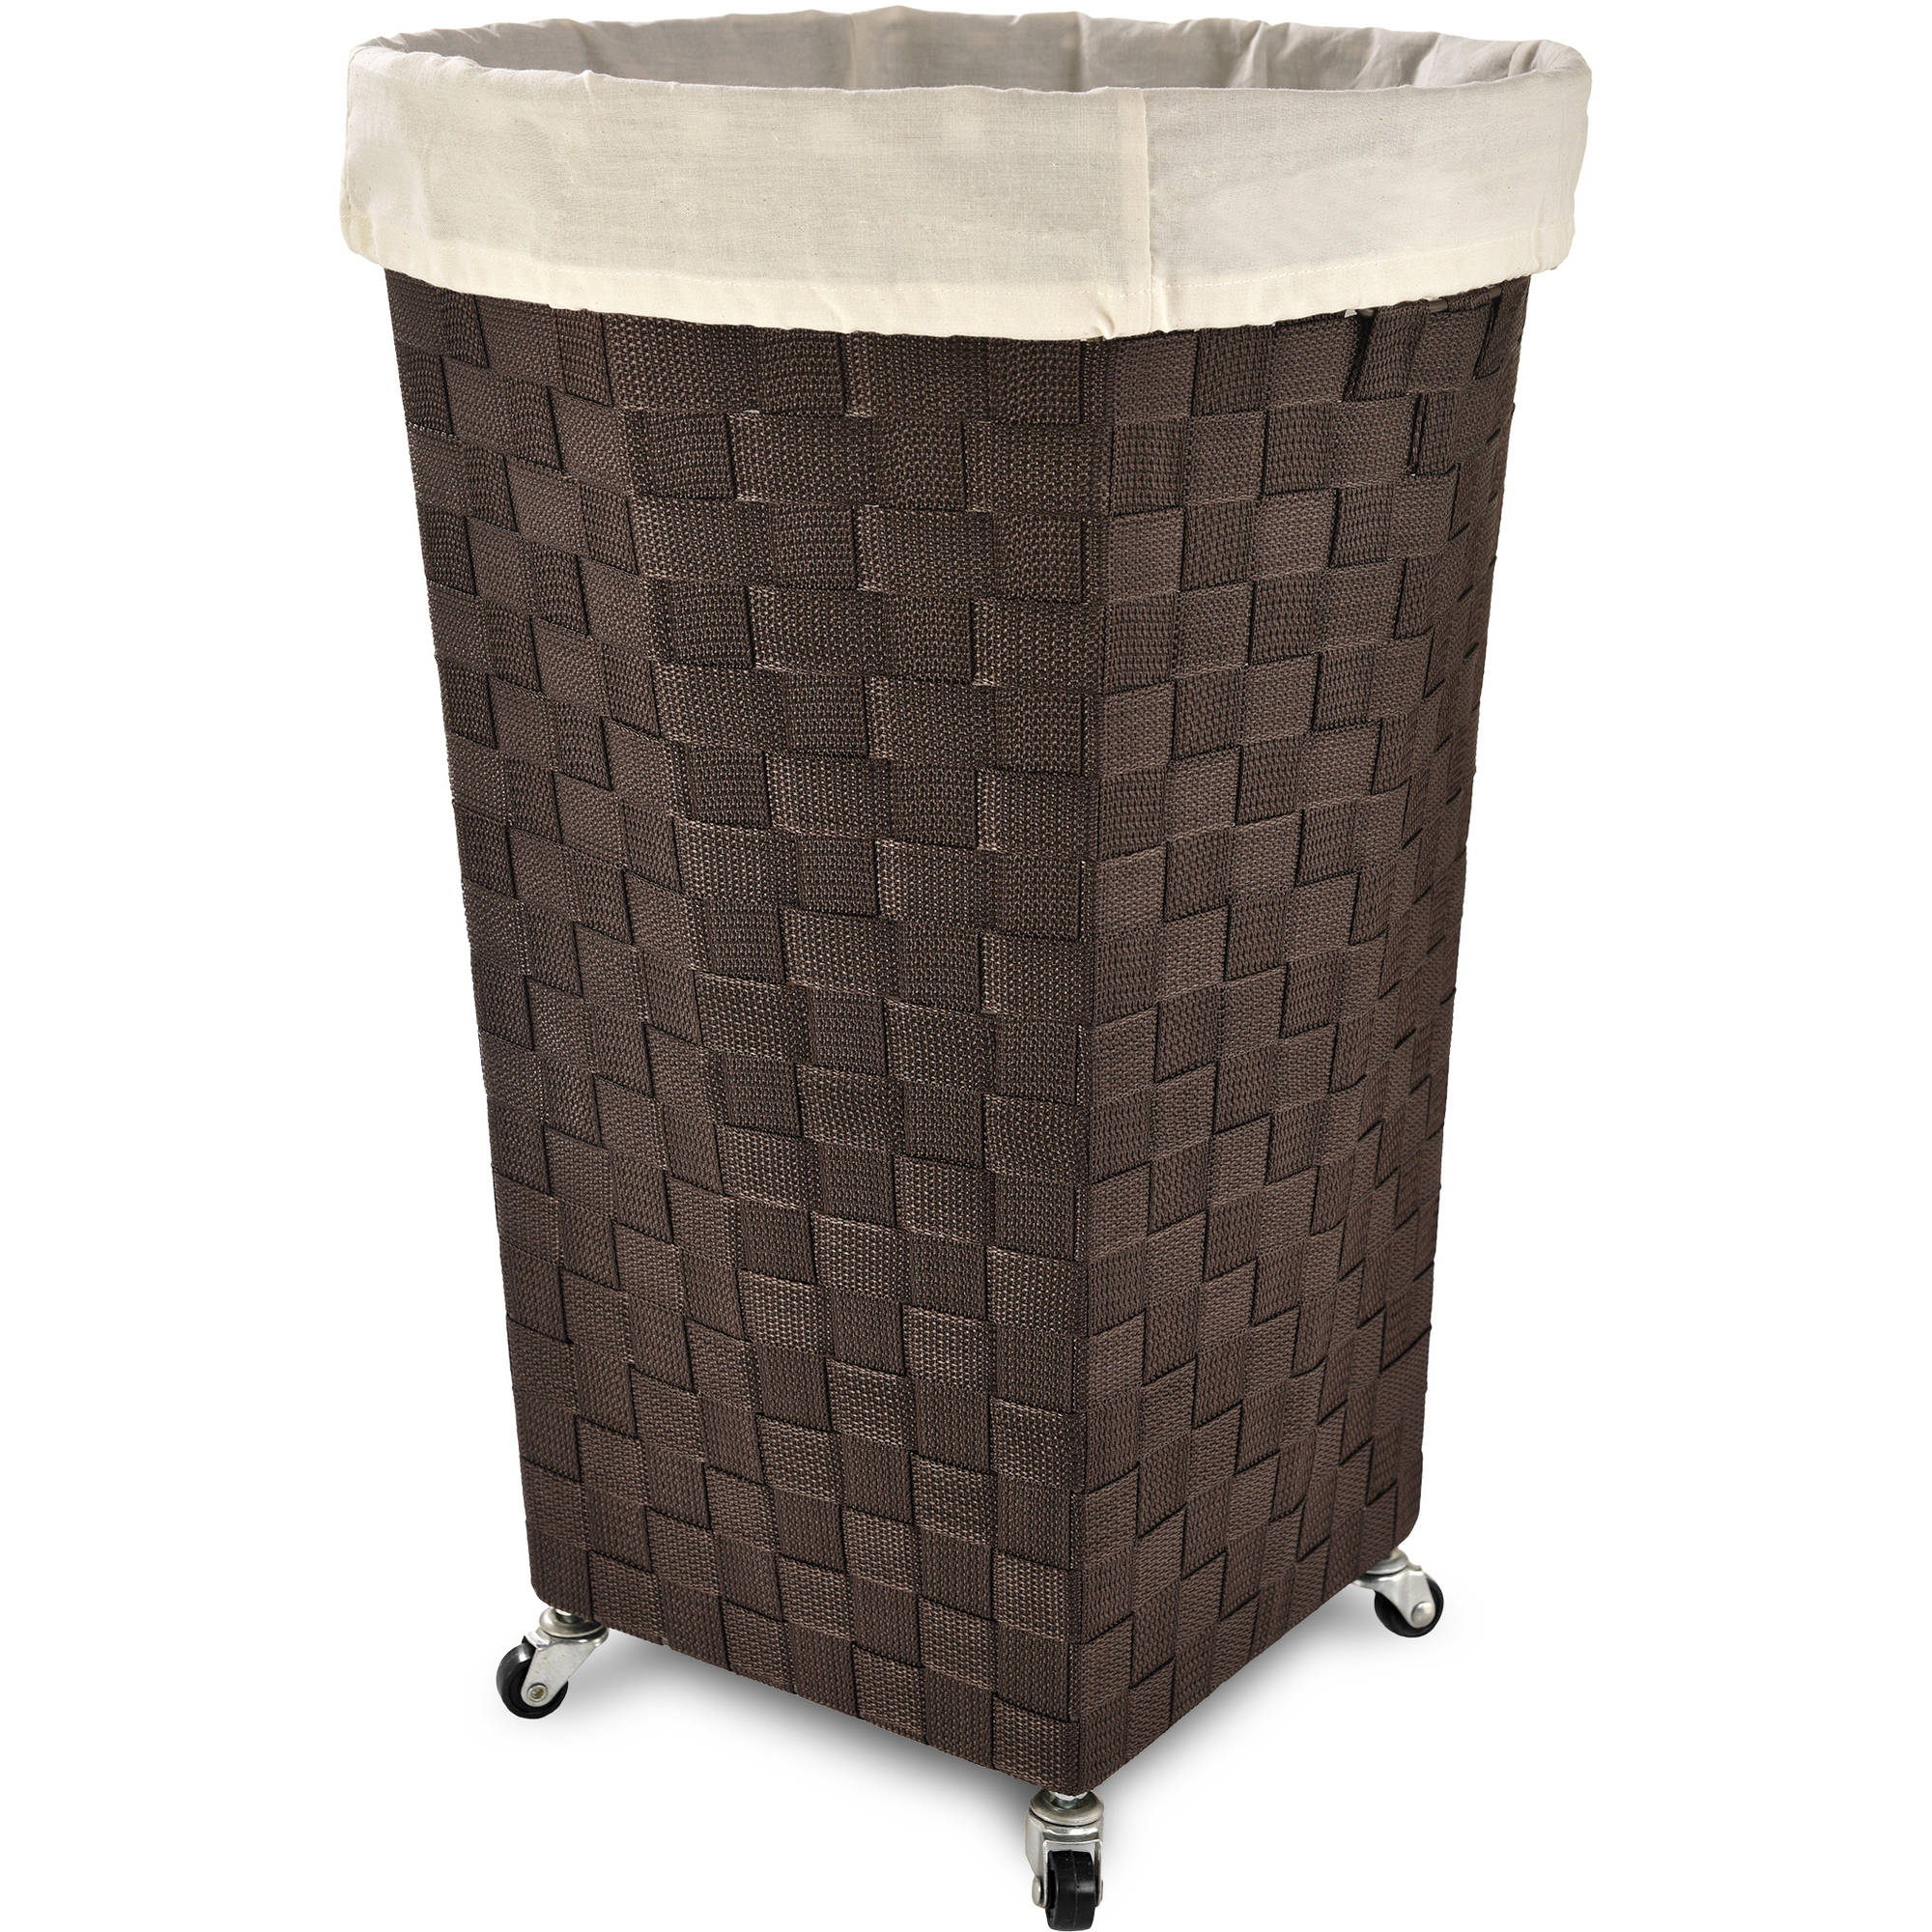 LaMont Home Linden Round Laundry Hamper